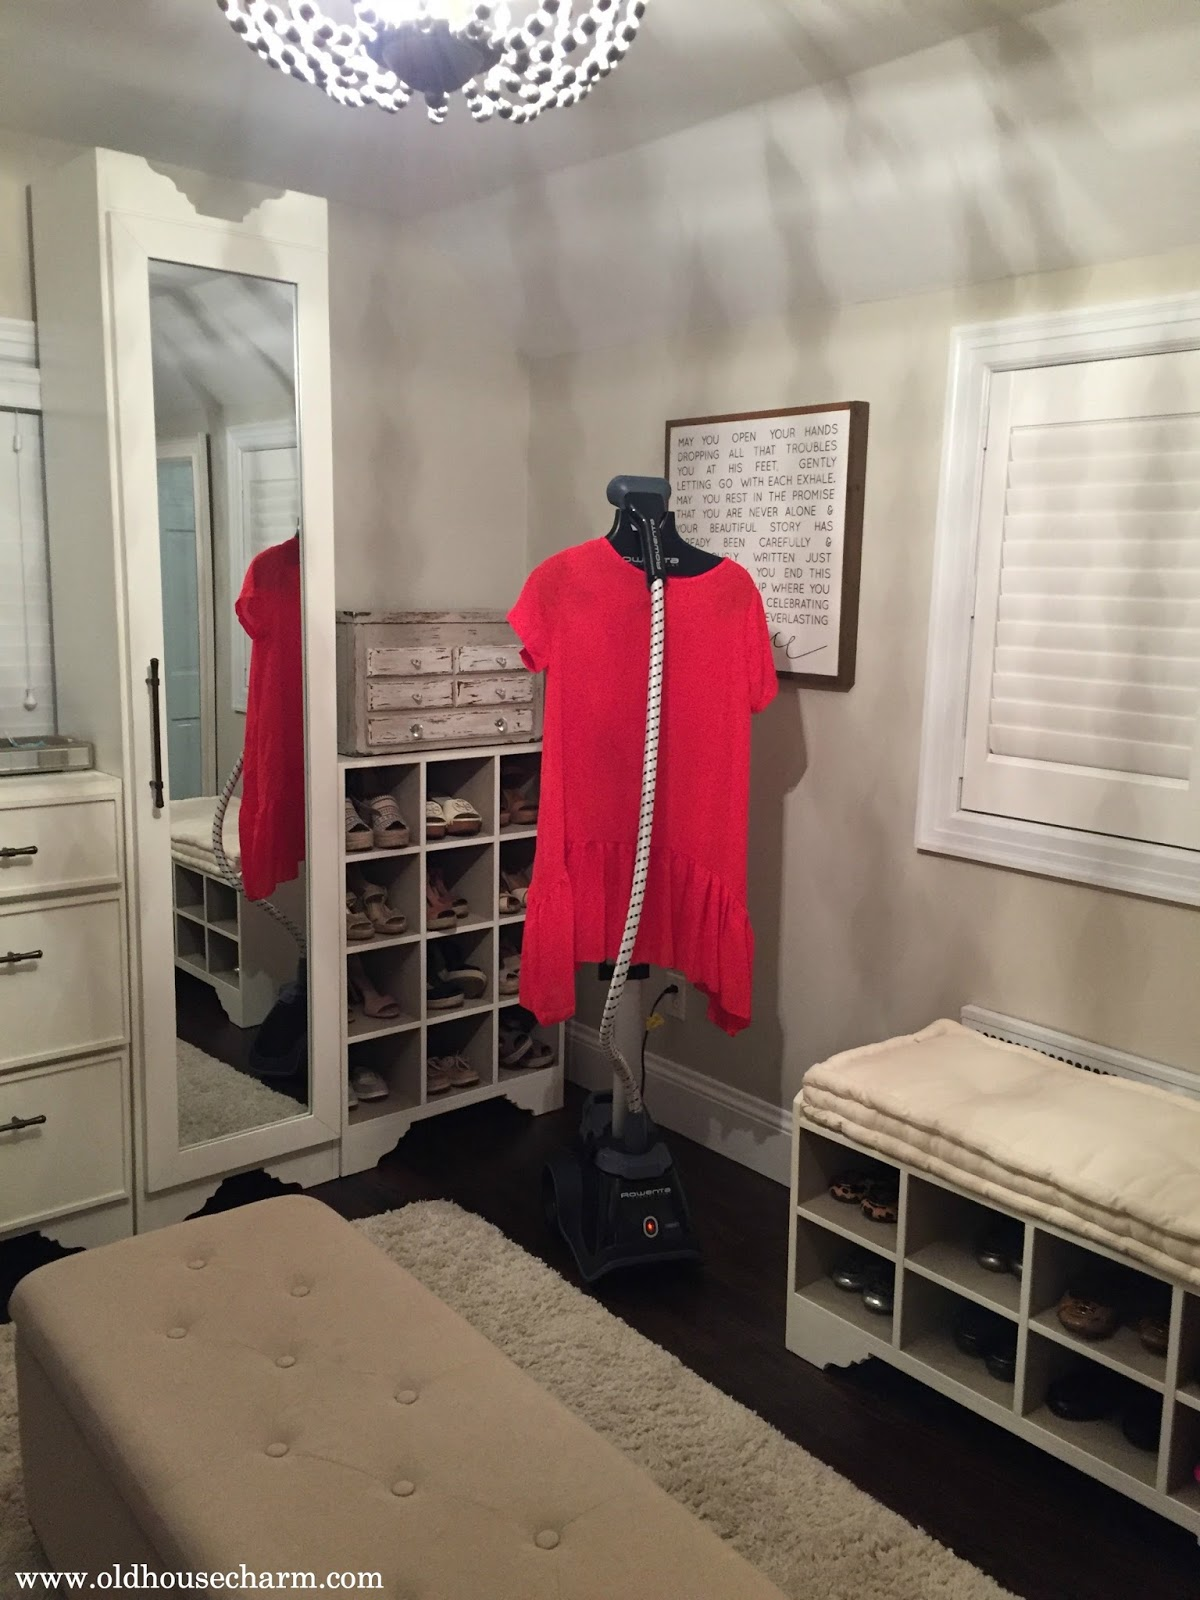 The Fabulous Thing About A Closet Room Is That You Can Leave A Steamer Out  In The Room. If You Donu0027t Own A Steamer, You Are So Missing Out...LIFE  CHANGING!